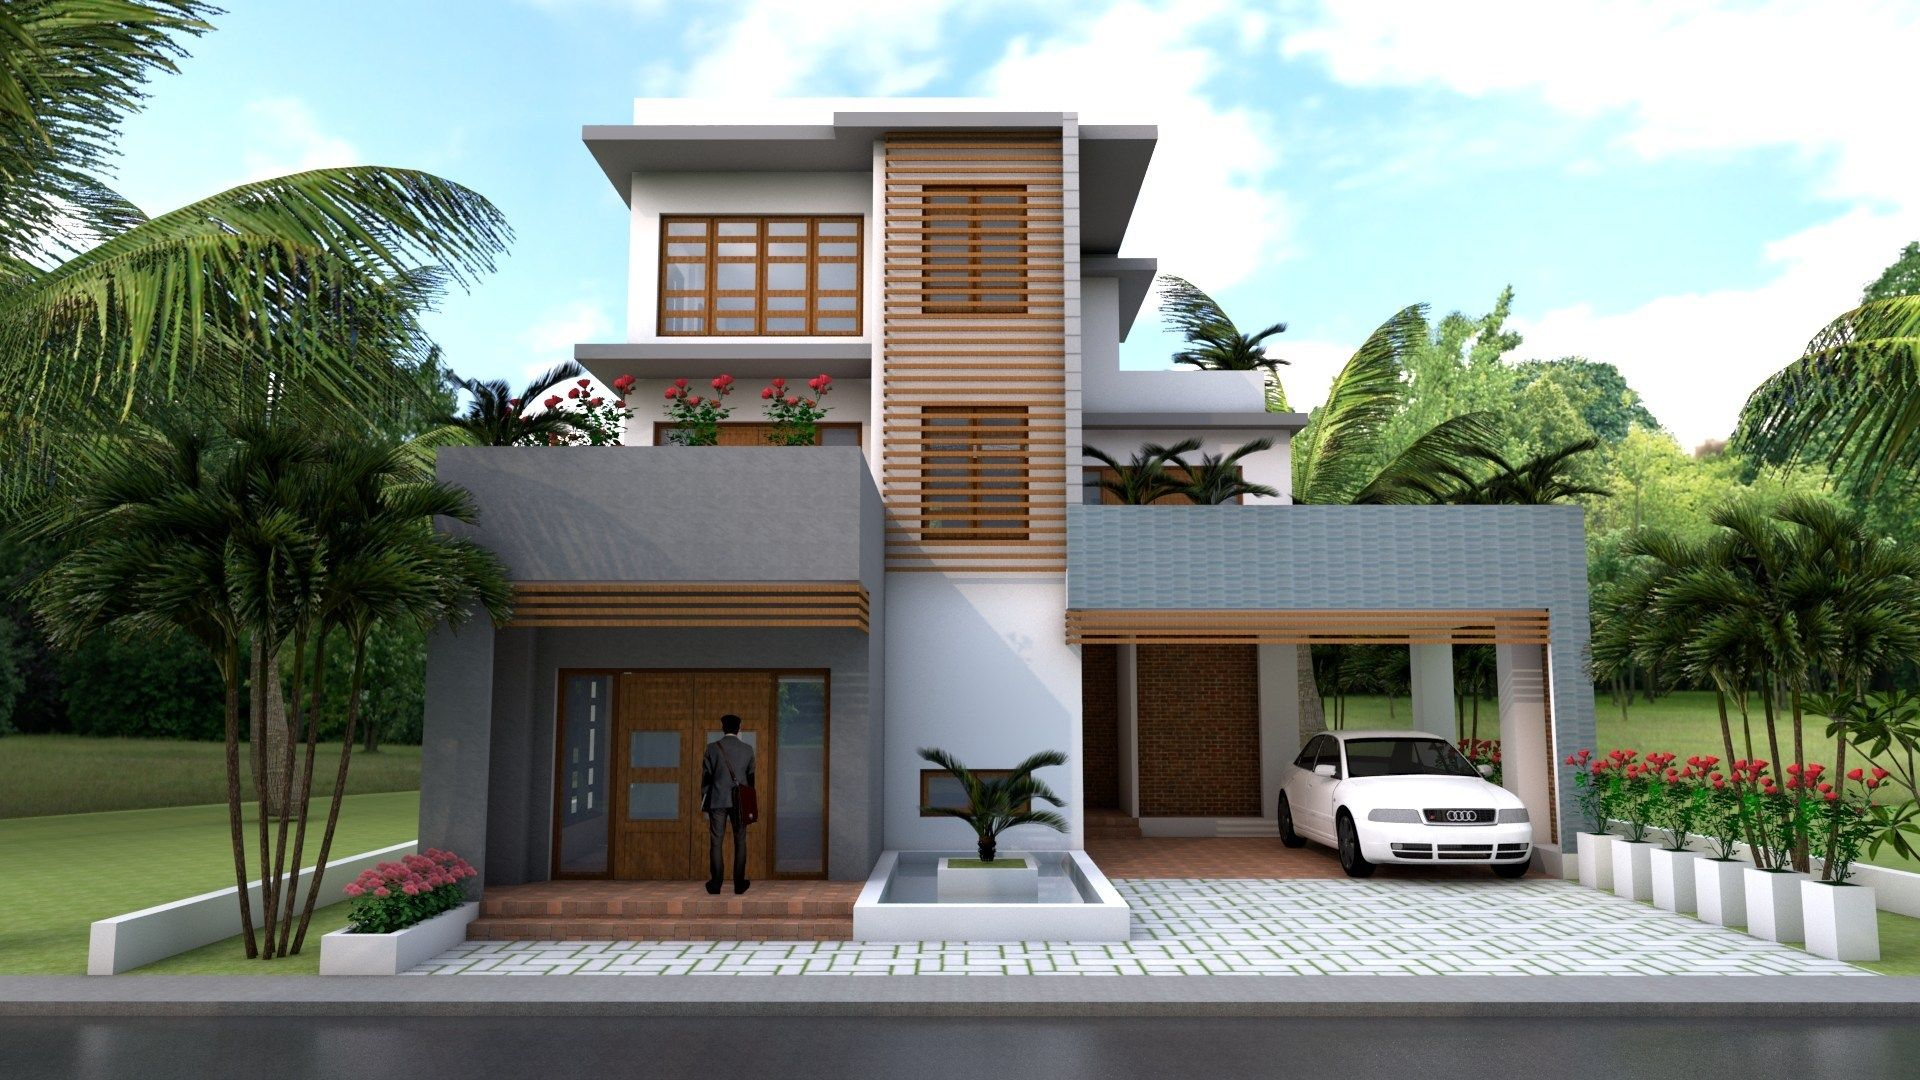 Sketchup Modern 4 Bedrooms Home Plan 11x12m Samphoas Com House Plans Three Story House Cool House Designs